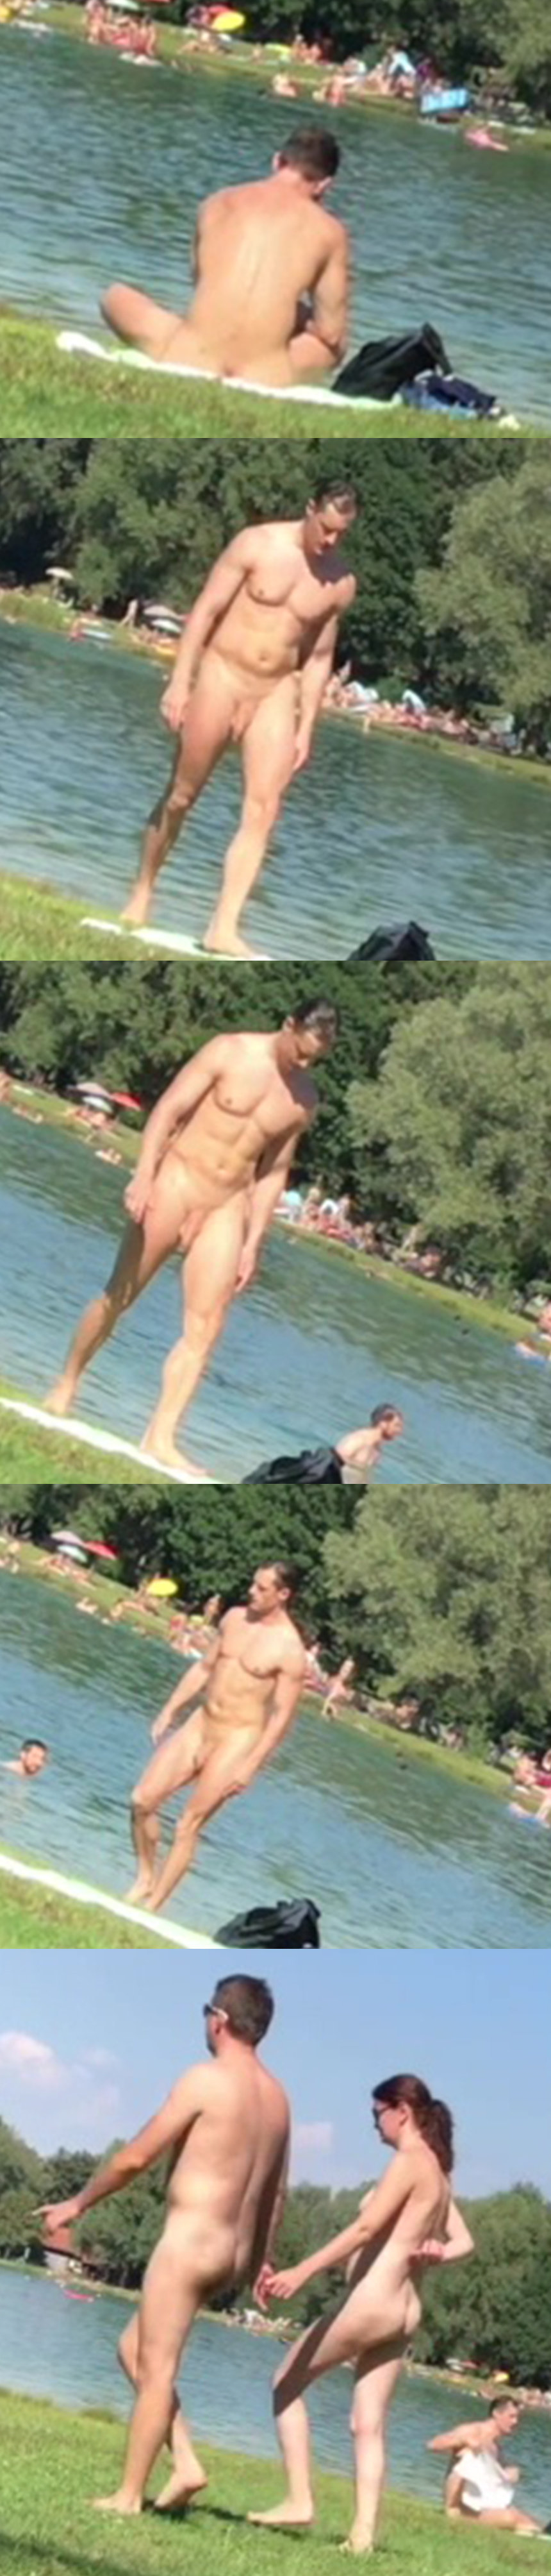 caught nude on the lake